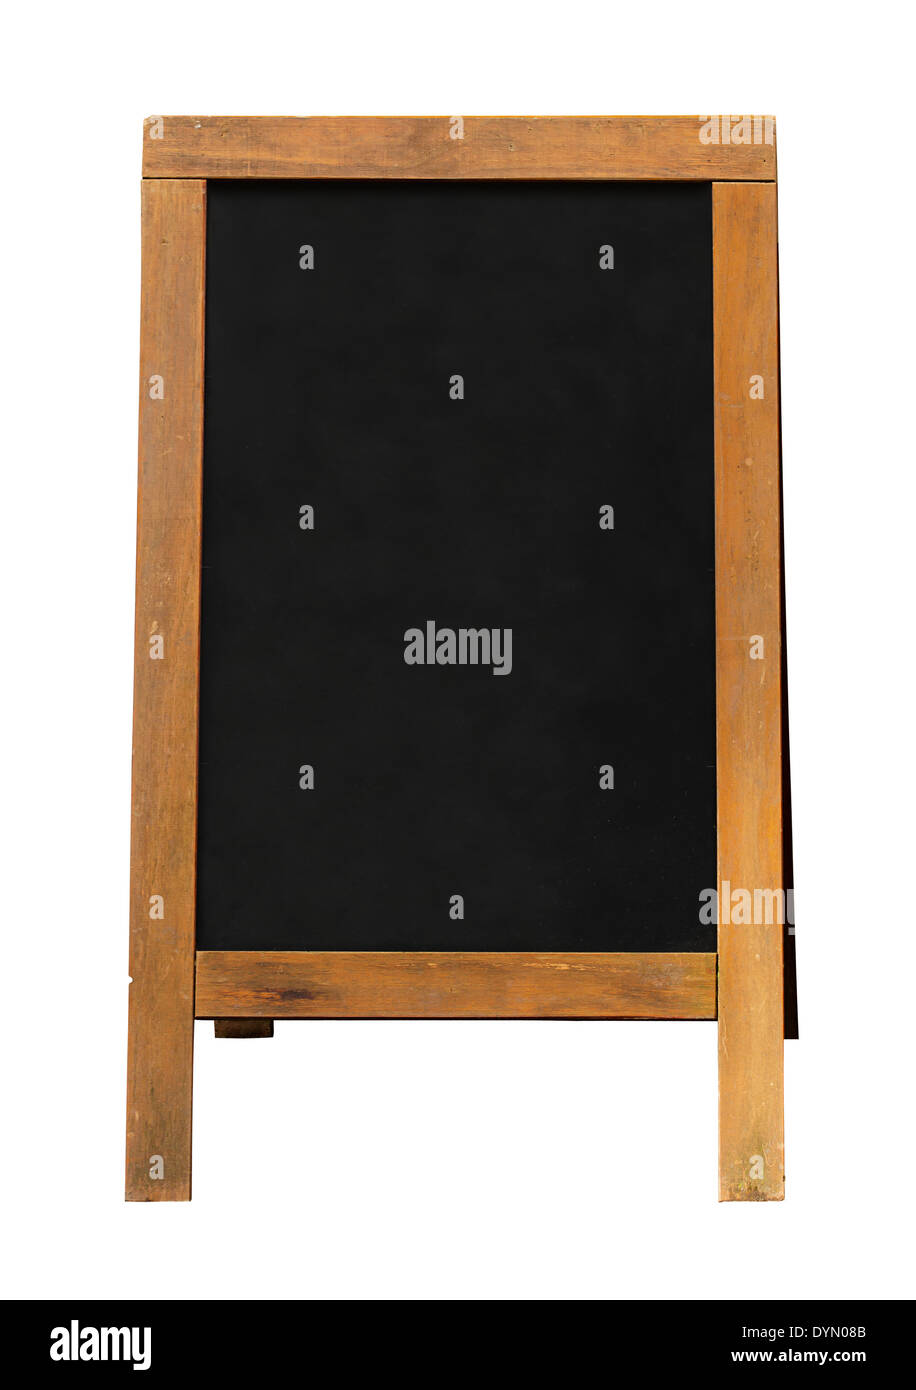 Blackboard A frame sign with wooden frame and blank area for your ...